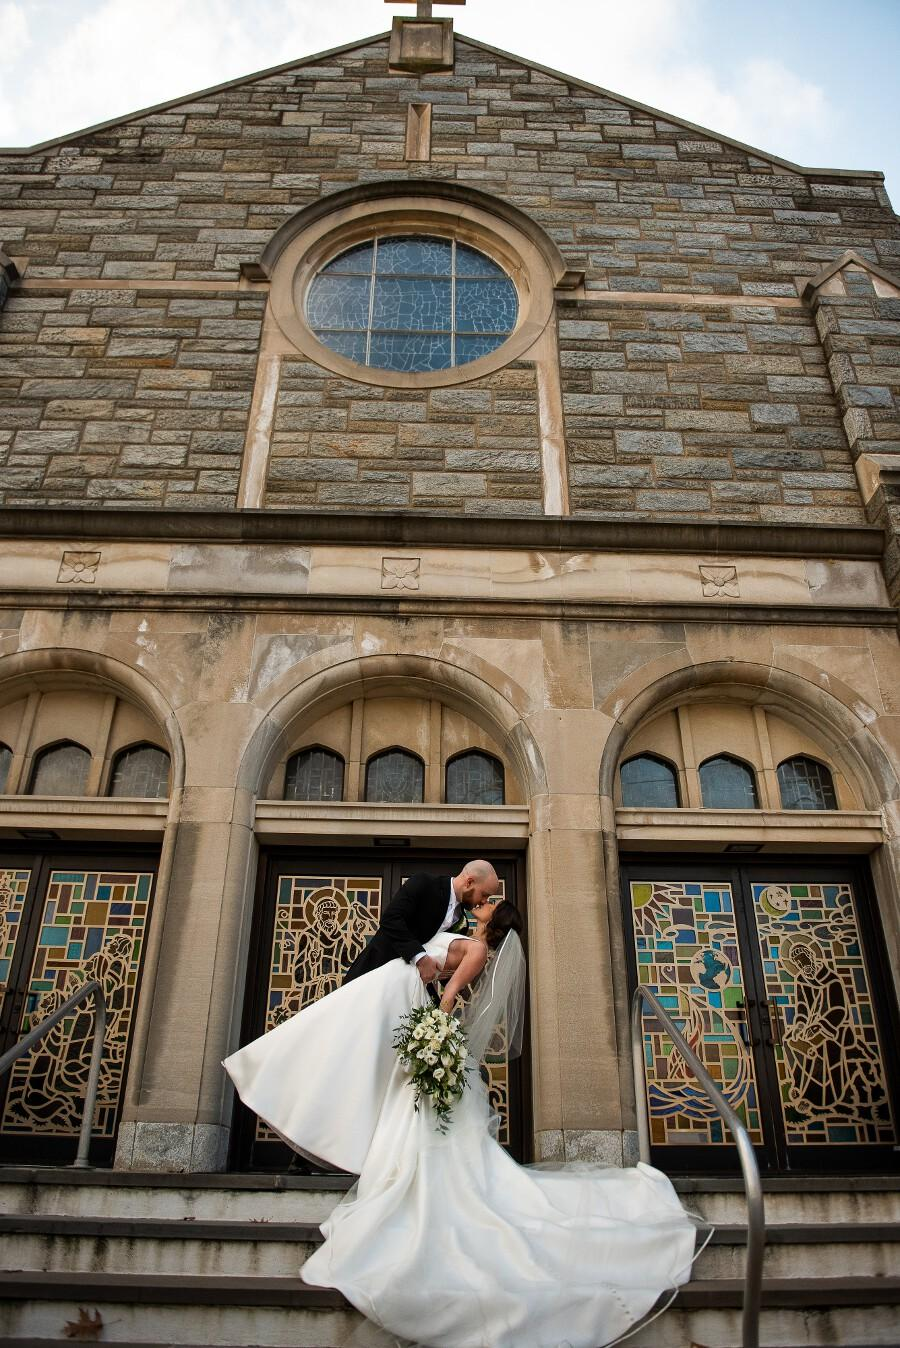 Outside the church, groom dips bride for a photo with veil and gown flowing over the stairs